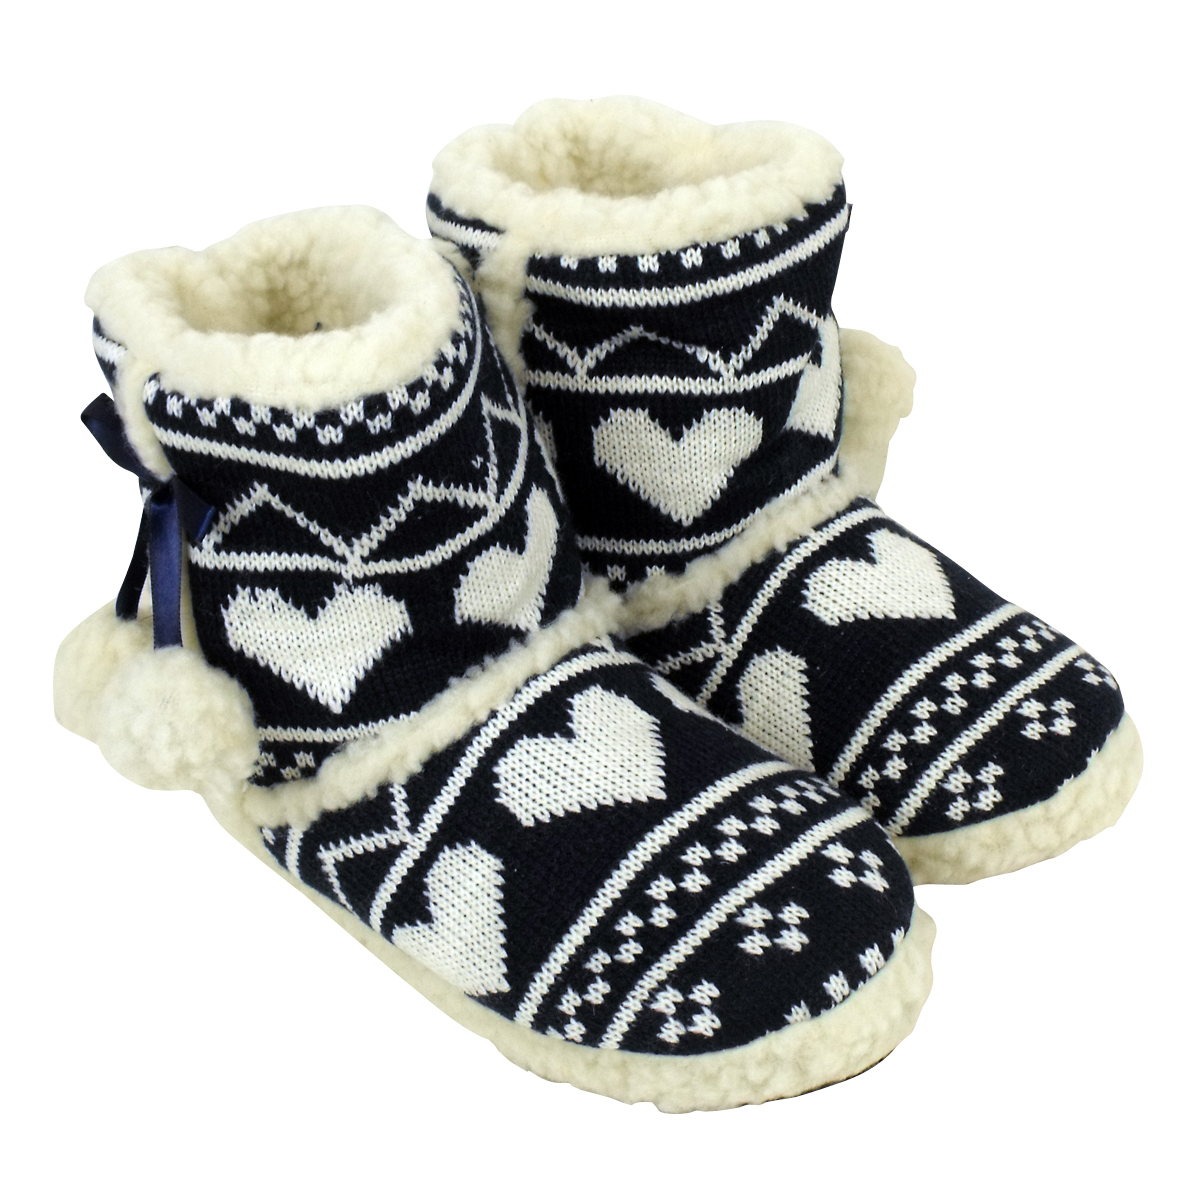 Womens Fluffy Boot Slippers | Santa Barbara Institute for